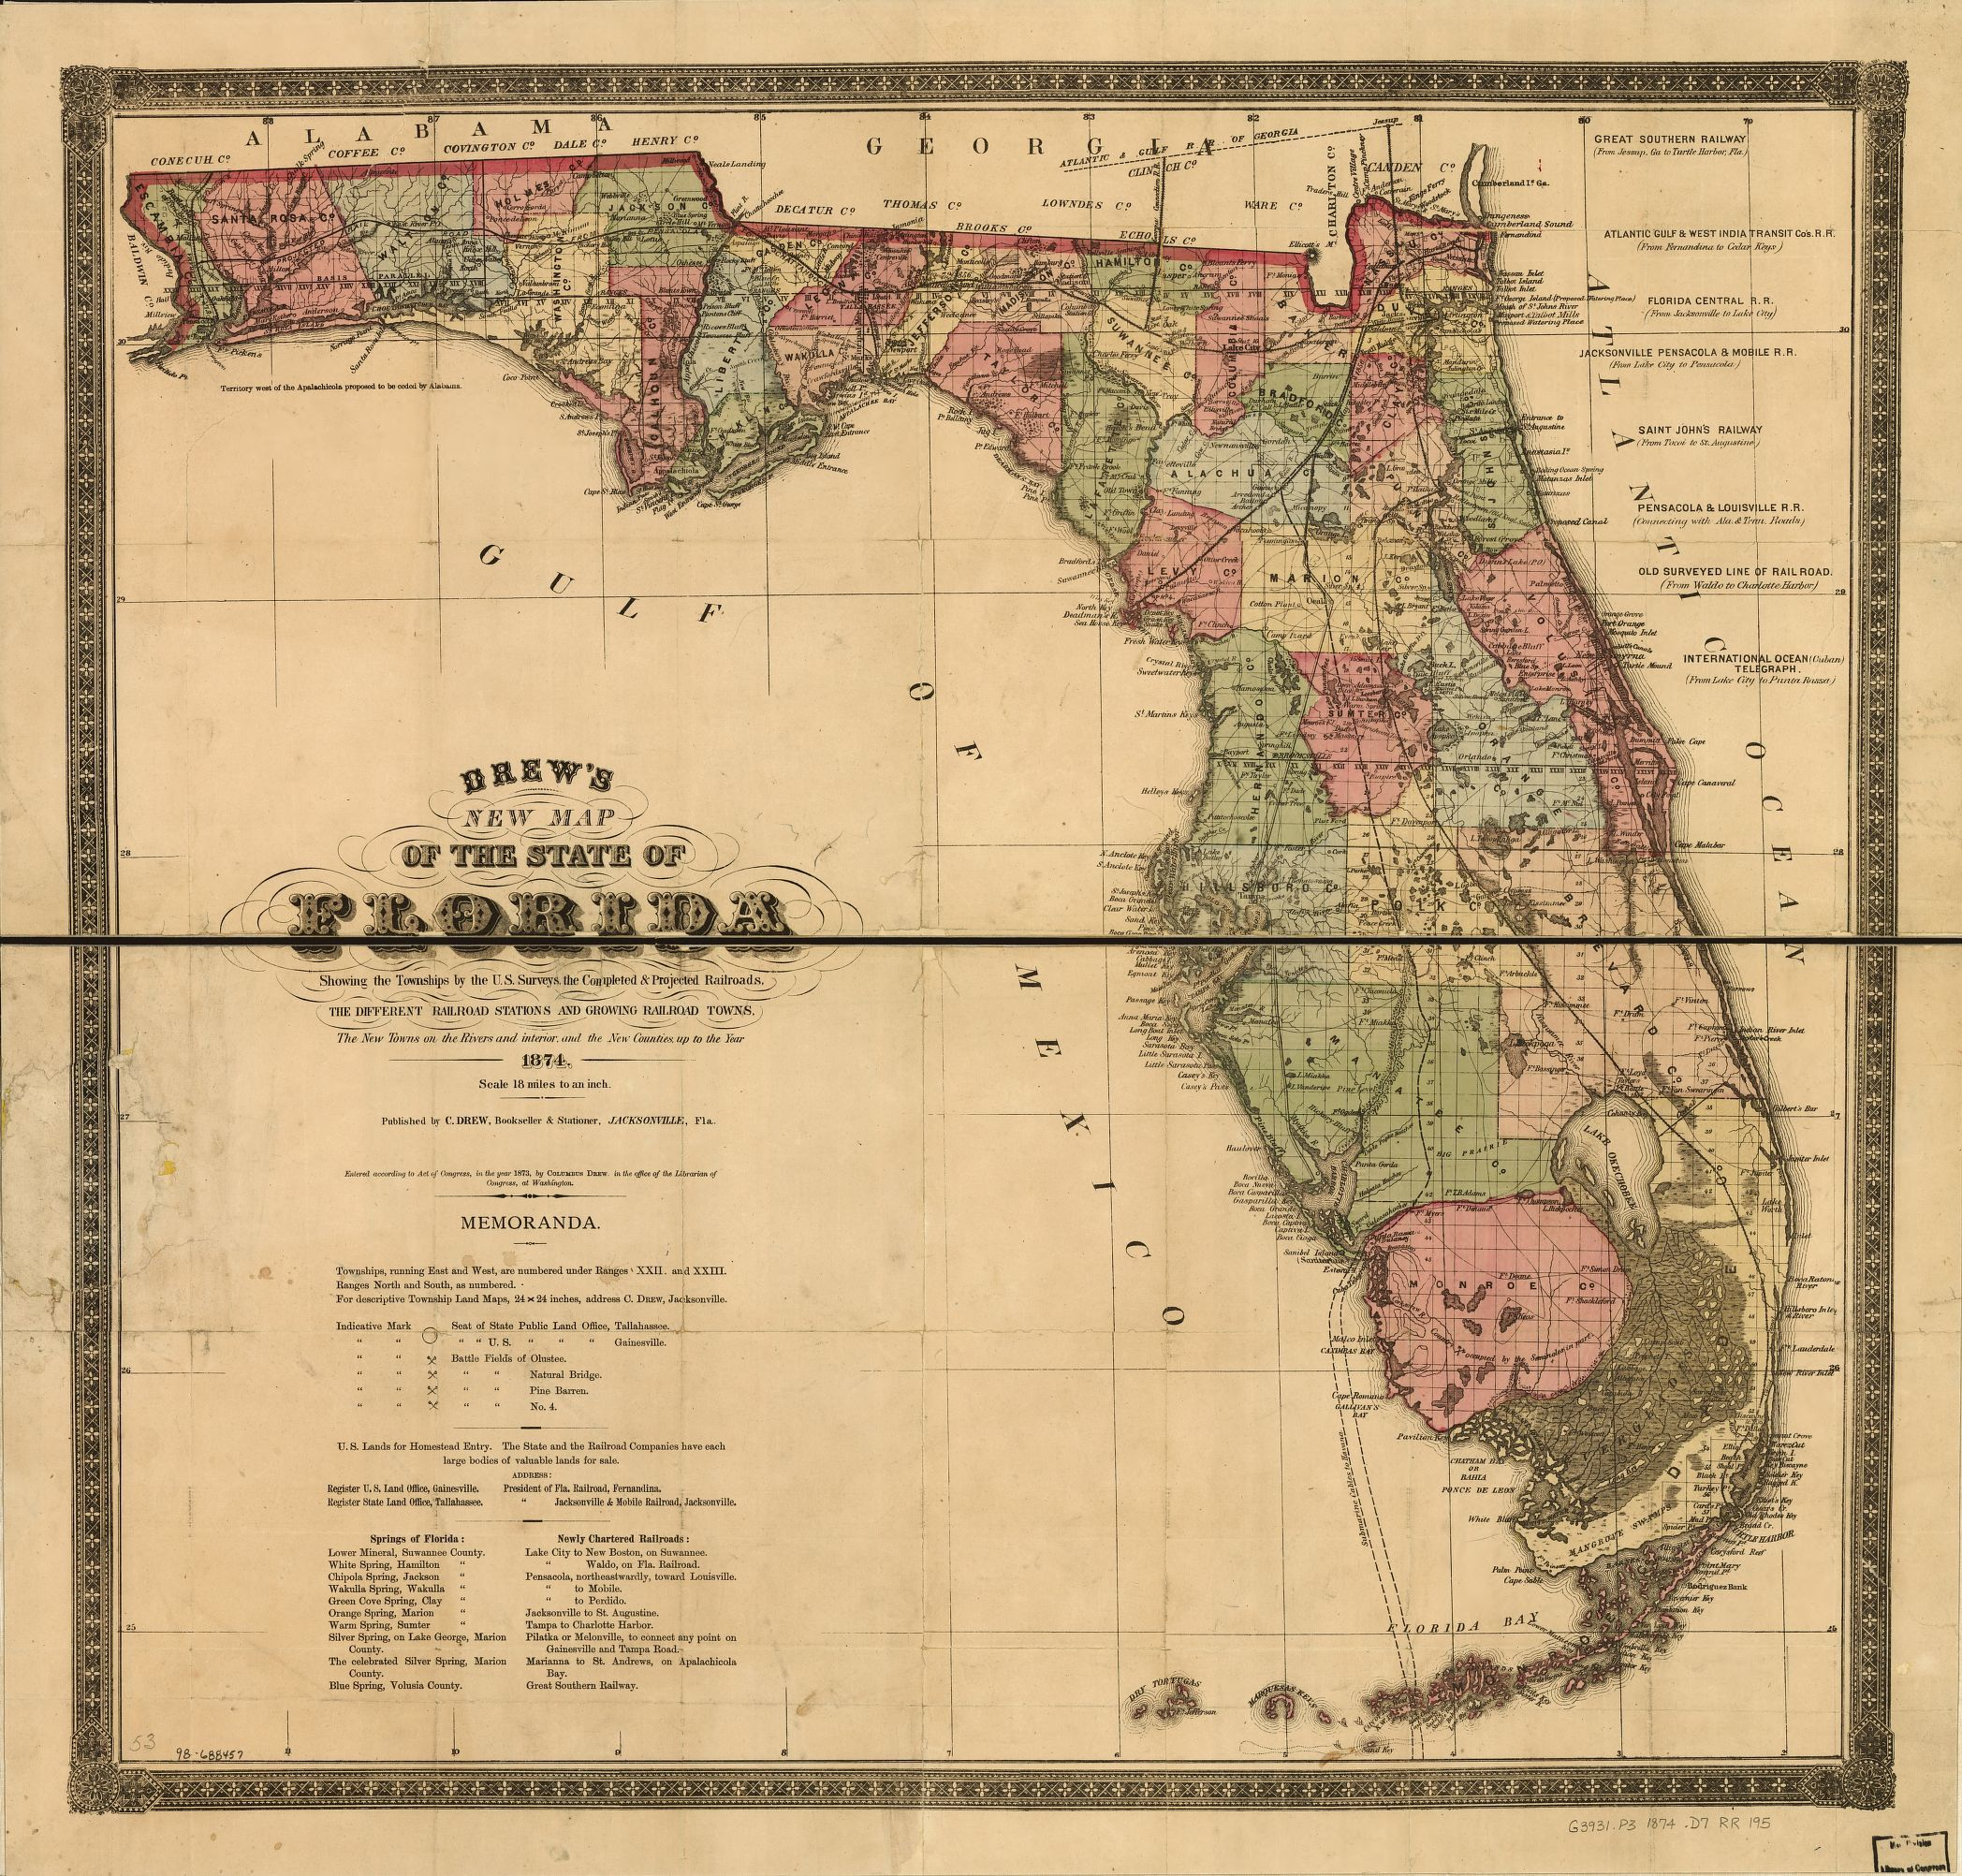 Drew S New Map Of The State Of Florida Showing The